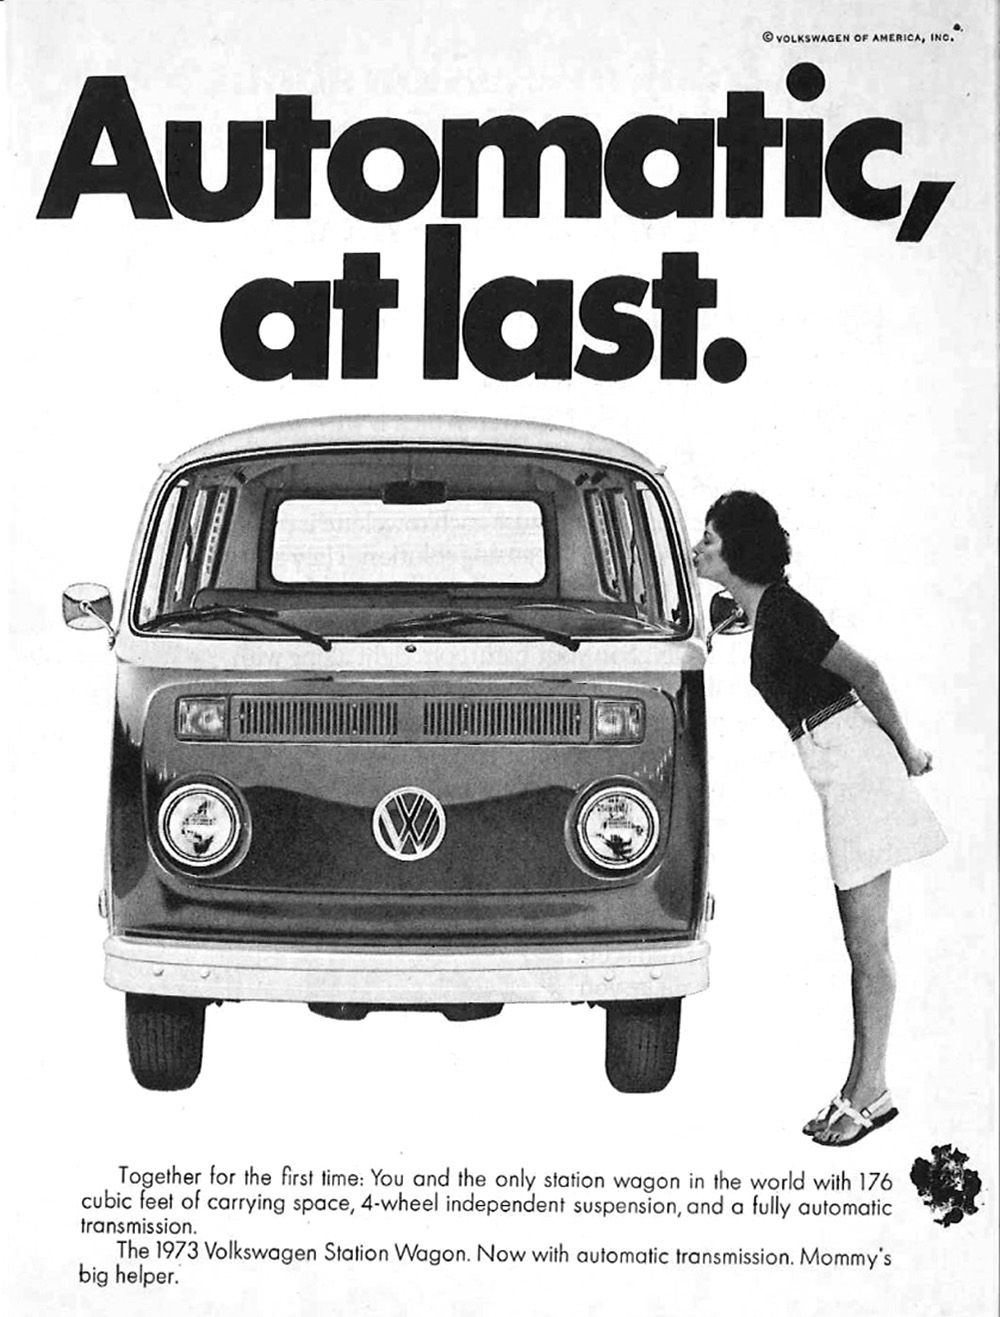 1973 automatic at last